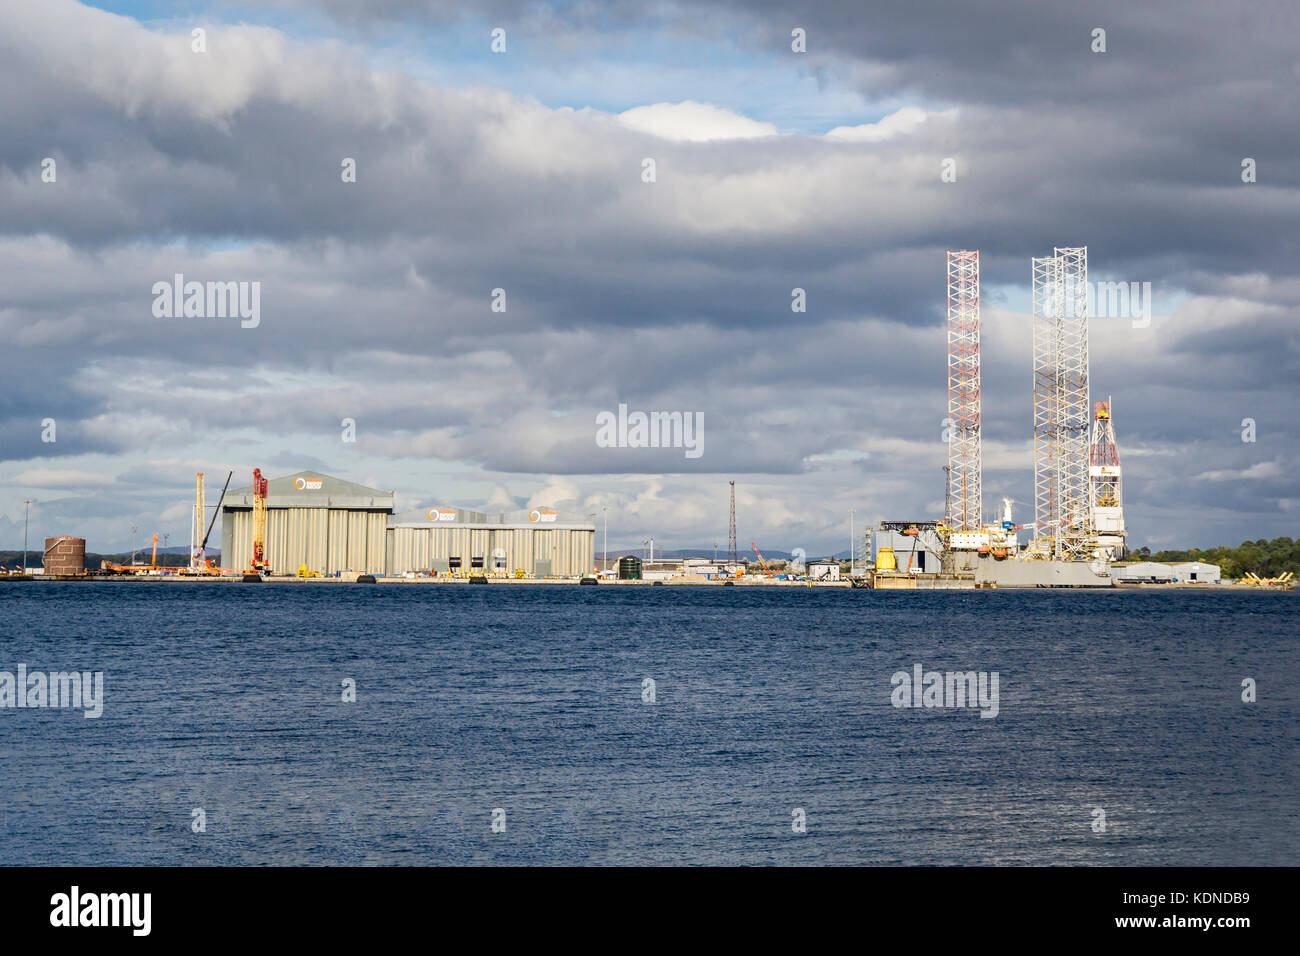 Global Energy at Nigg Energy Park Port of Nigg Highland Scotland UK viewed from Cromarty on the Black Isle. - Stock Image